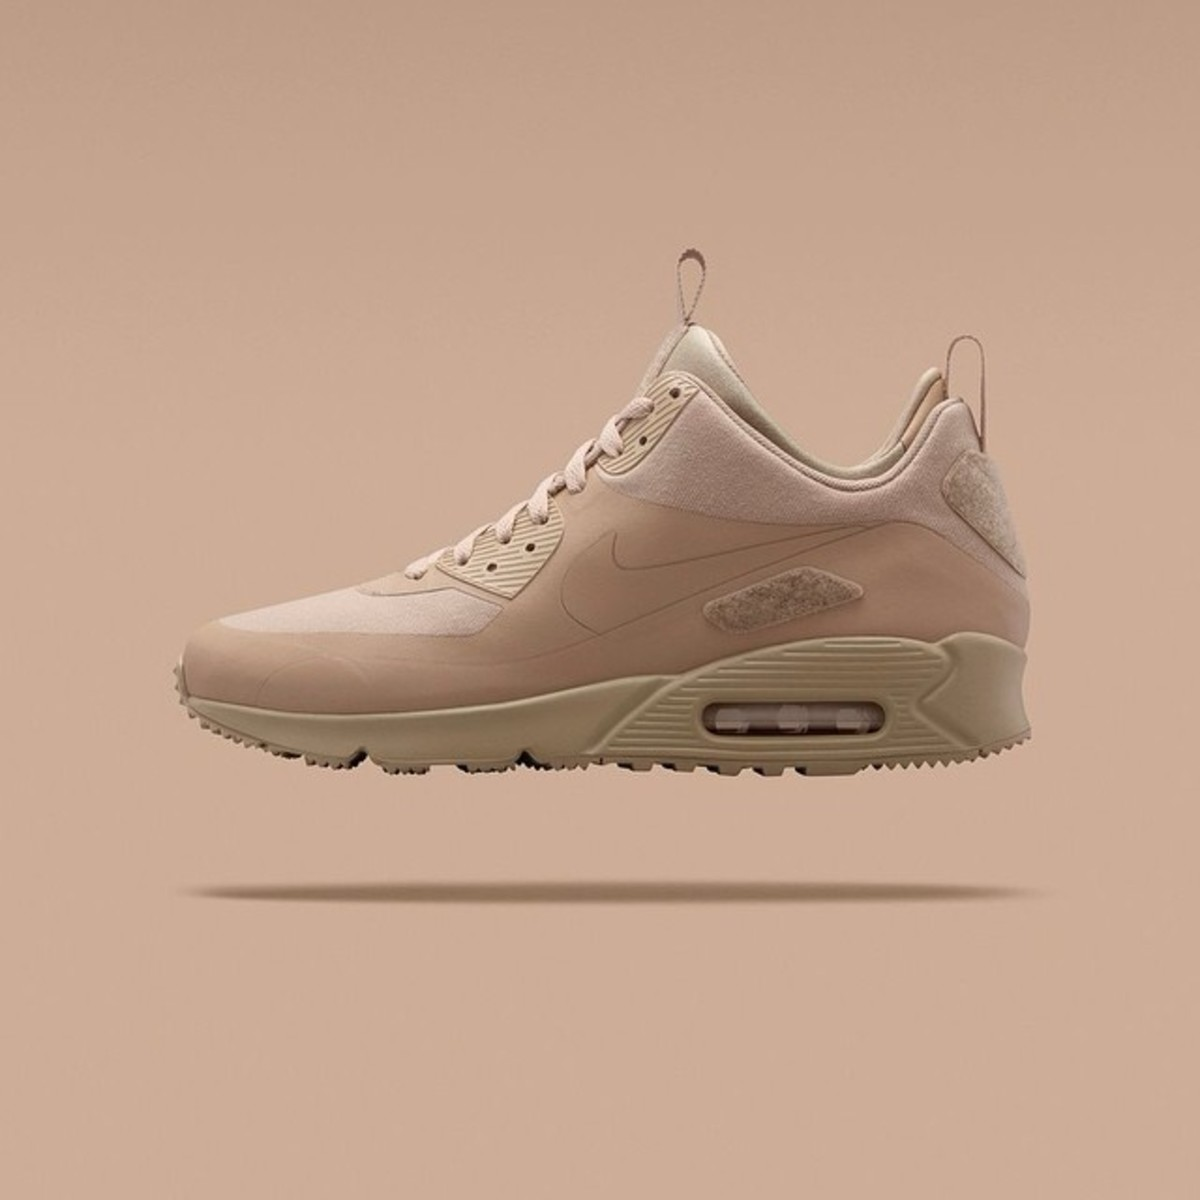 nike-air-max-90-sneakerboot-patch-03